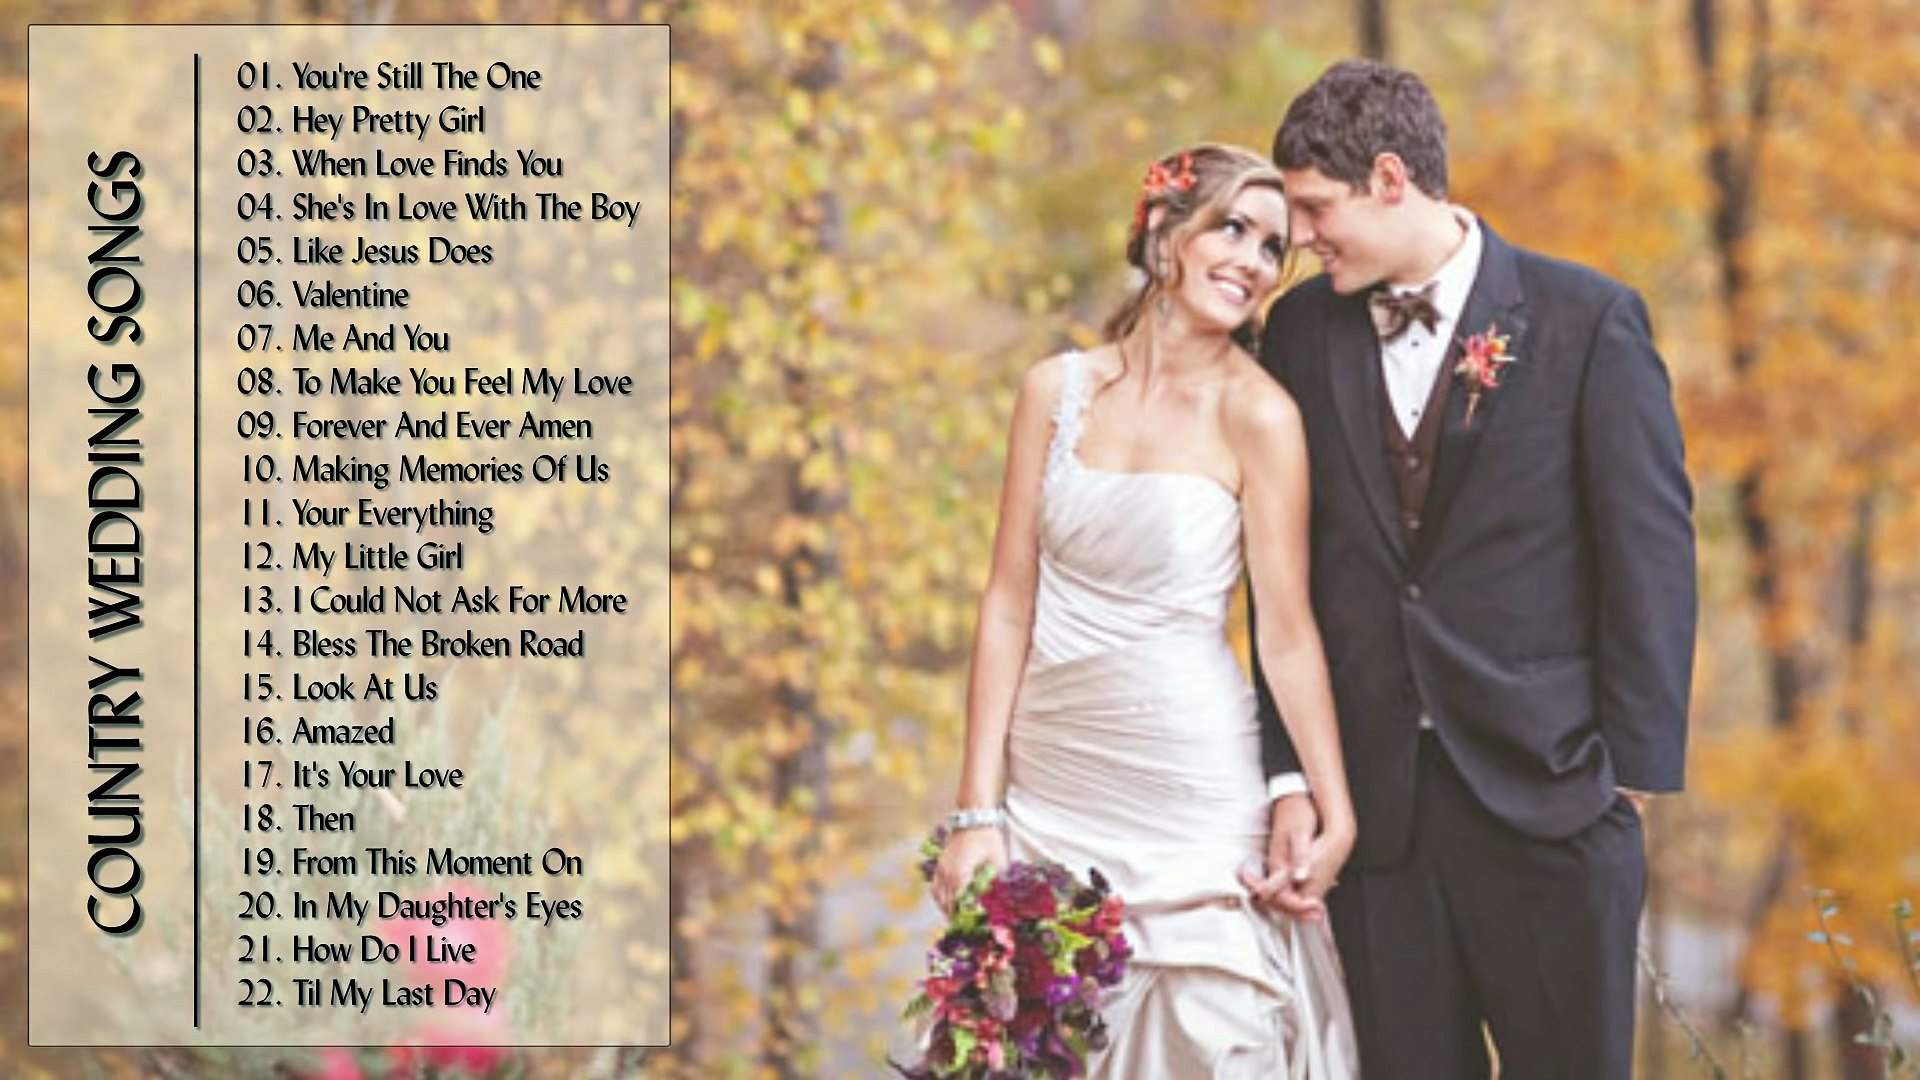 Country Love Songs For Wedding - Country Wedding Songs #2